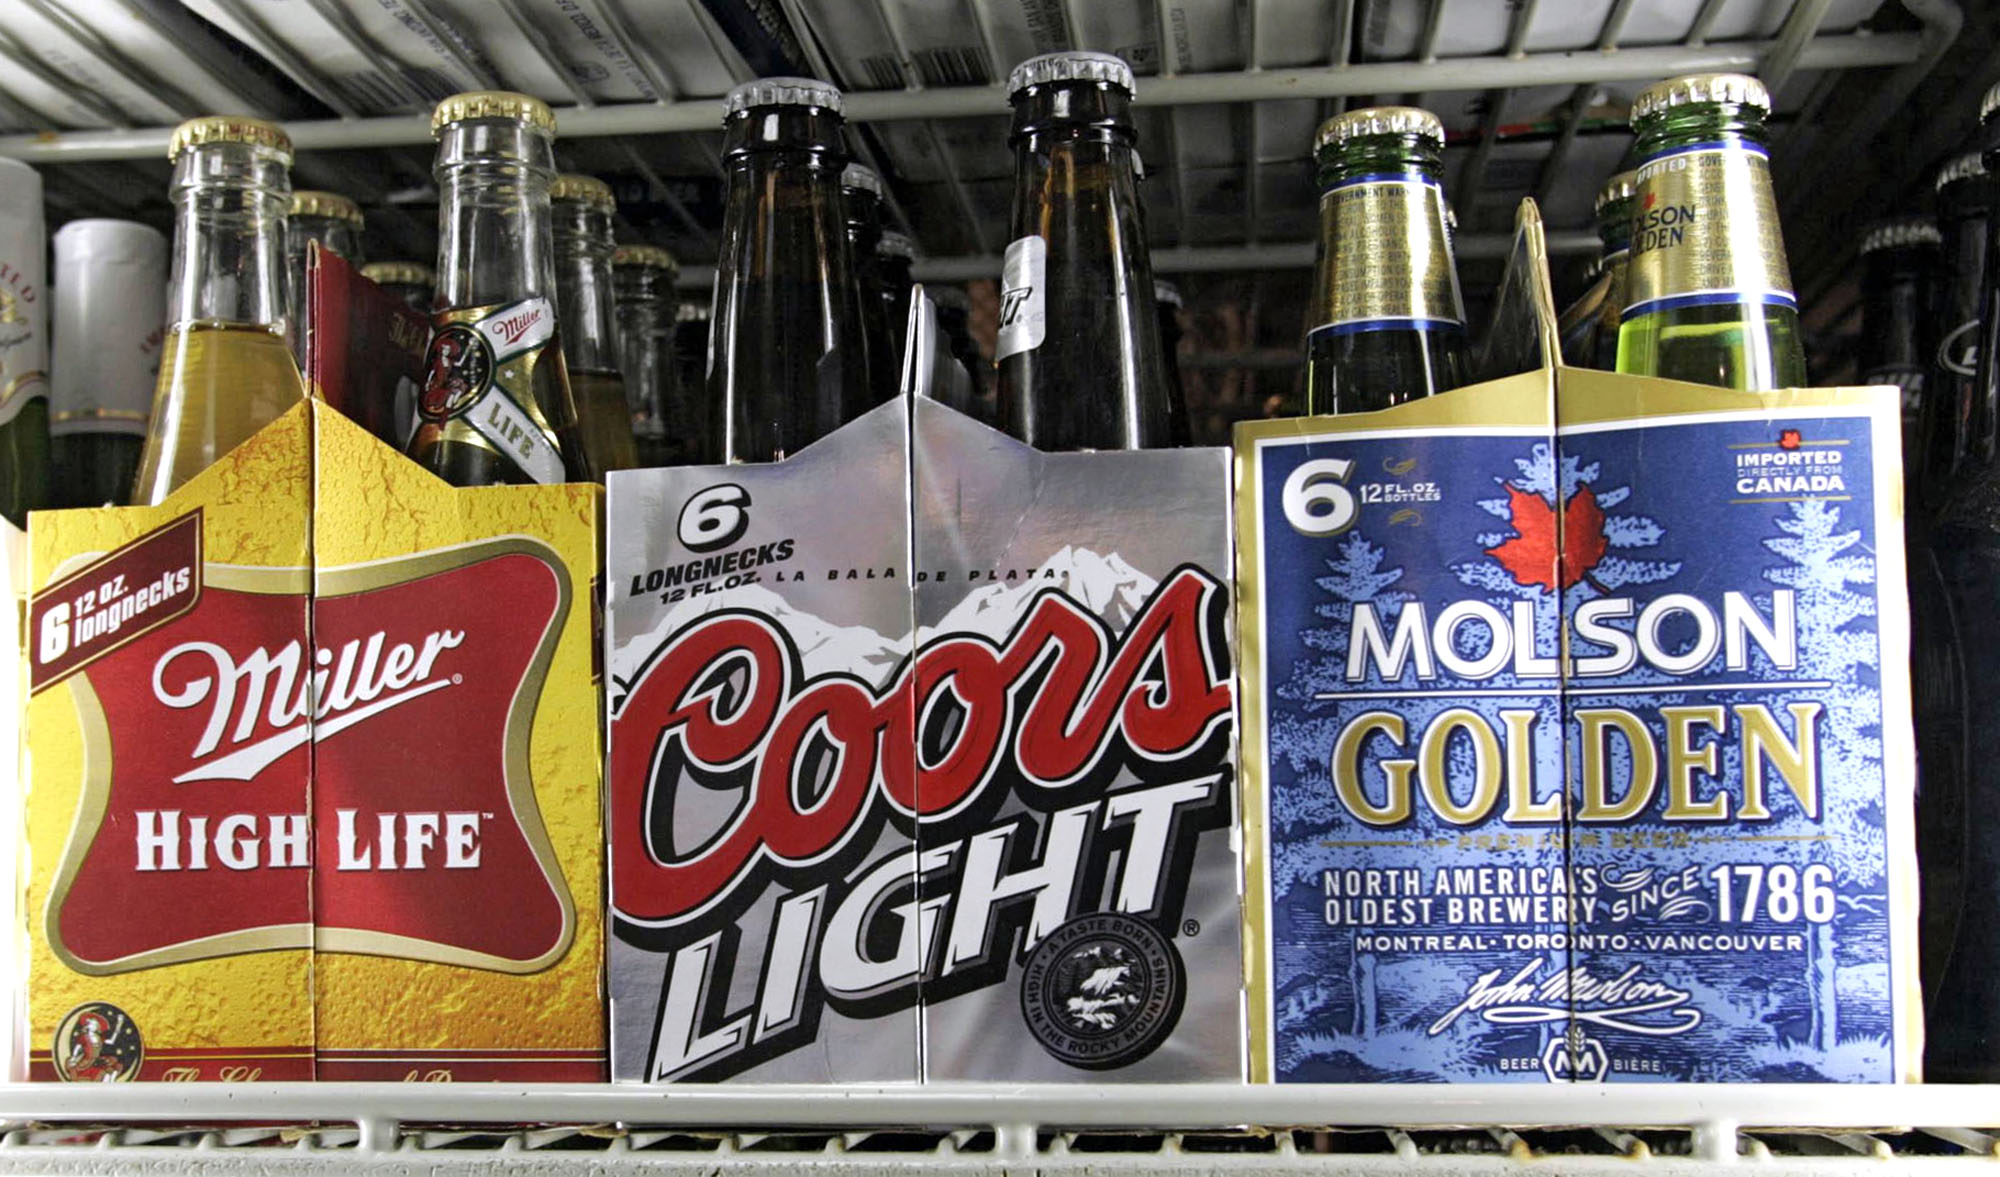 Six packs of Miller High Life, Coors Light and Molson Golden